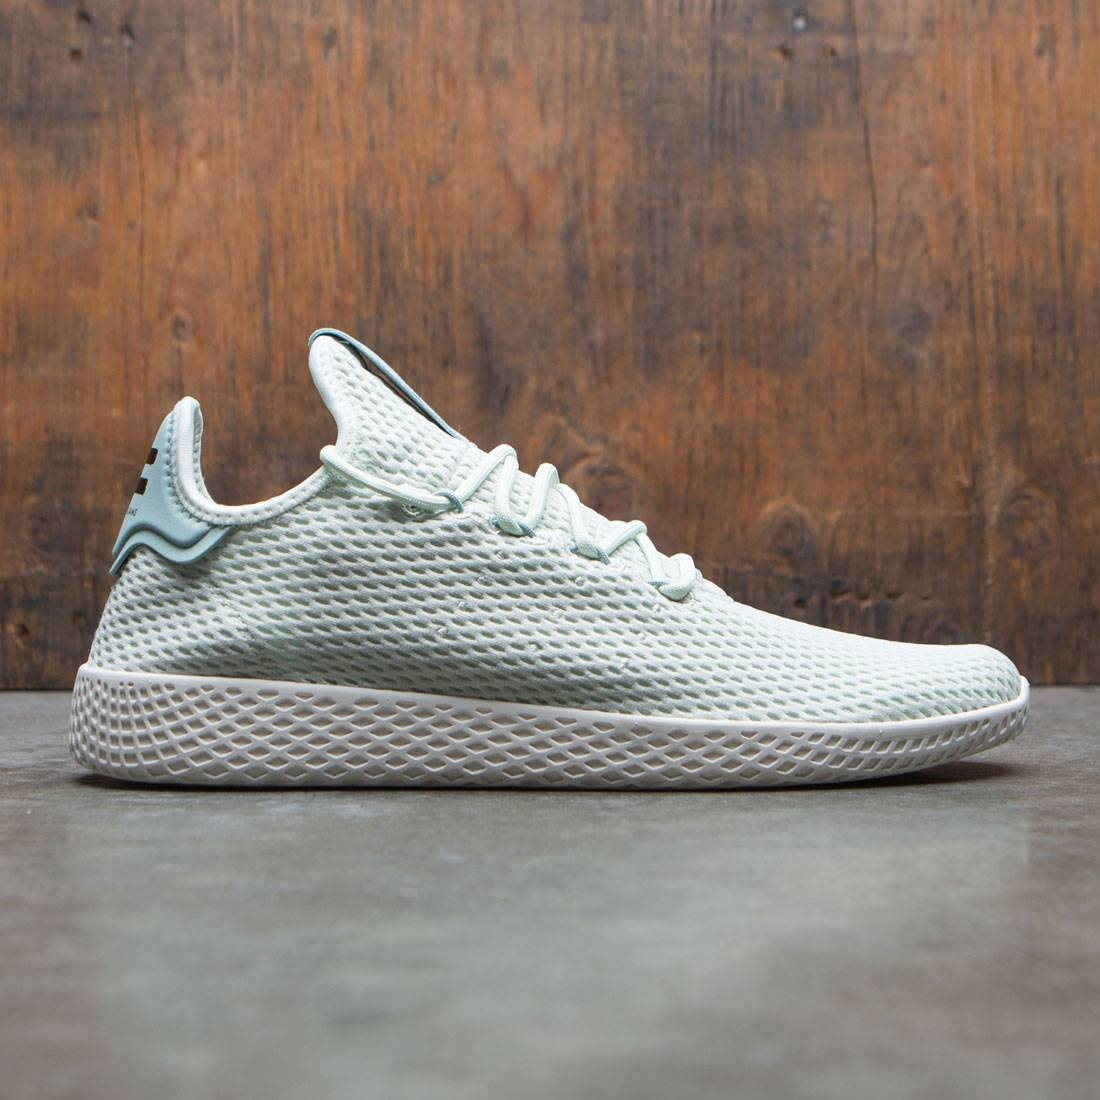 9e3e2ae6ebeb7 Adidas x Pharrell Williams Men Tennis Hu green linen green tactile green